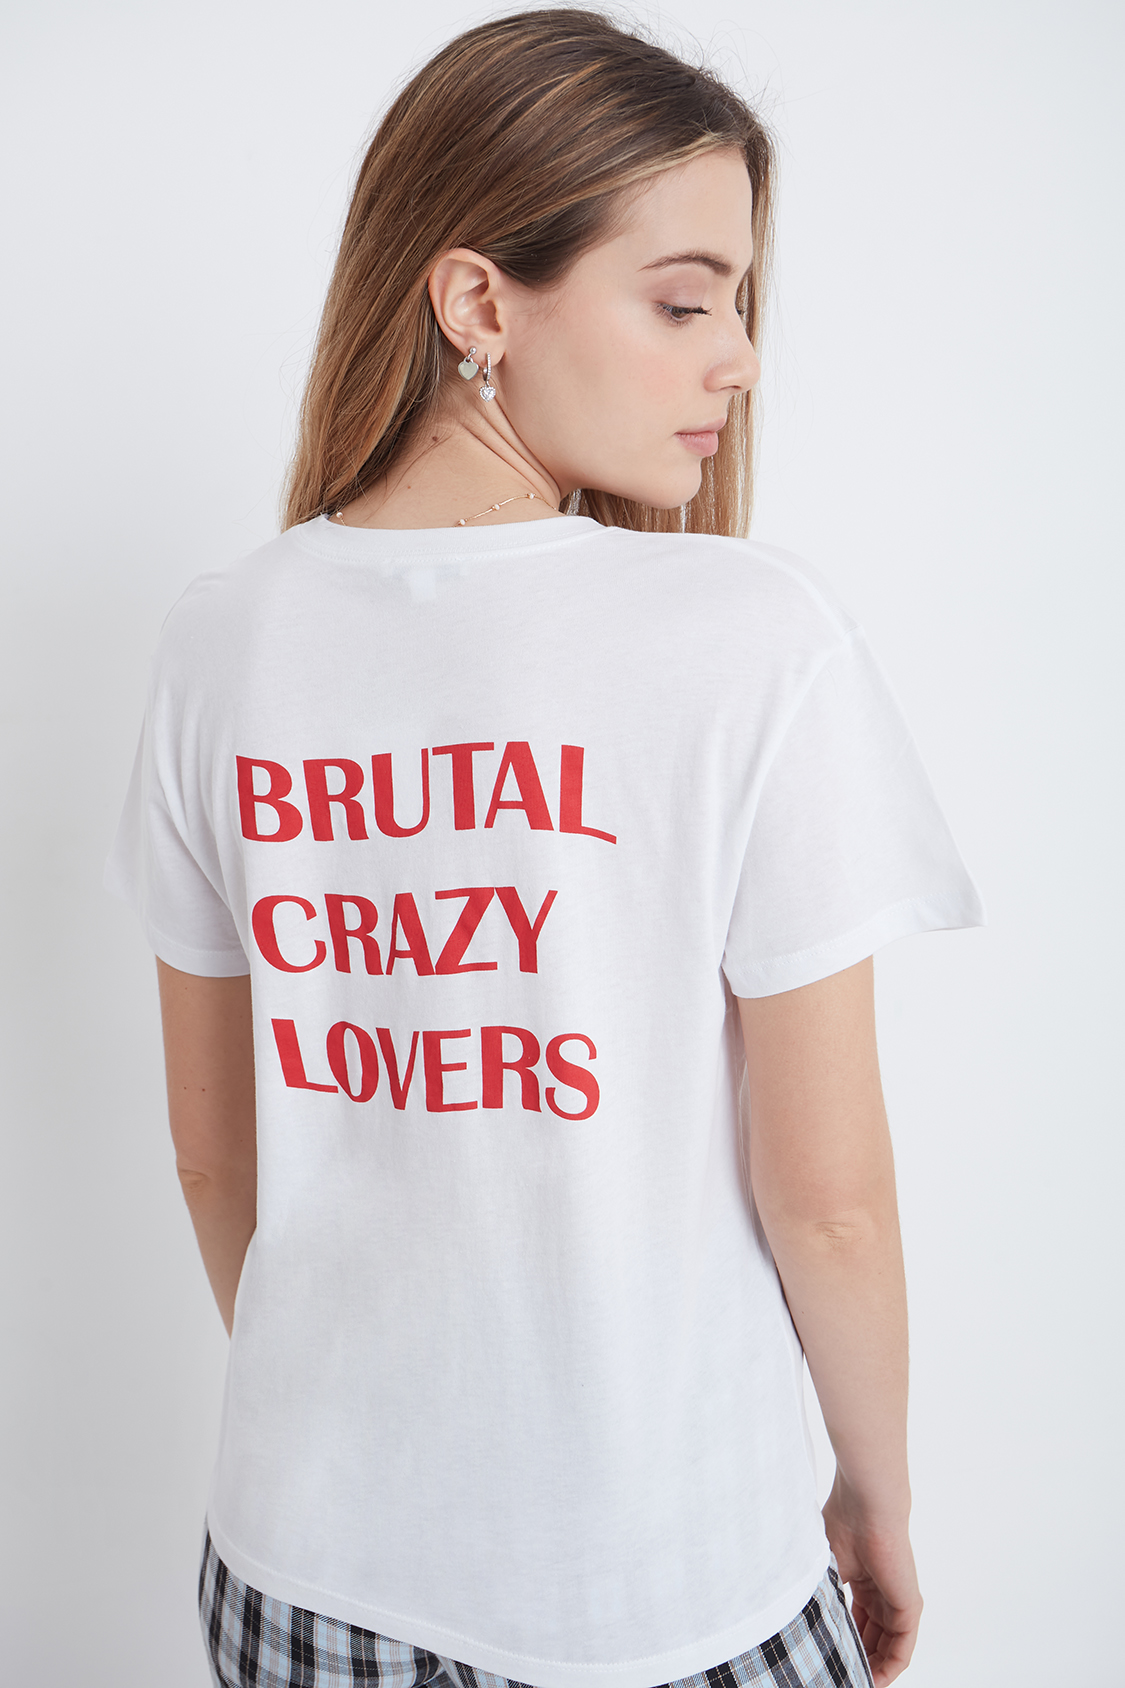 T-Shirt Brutal crazy lovers